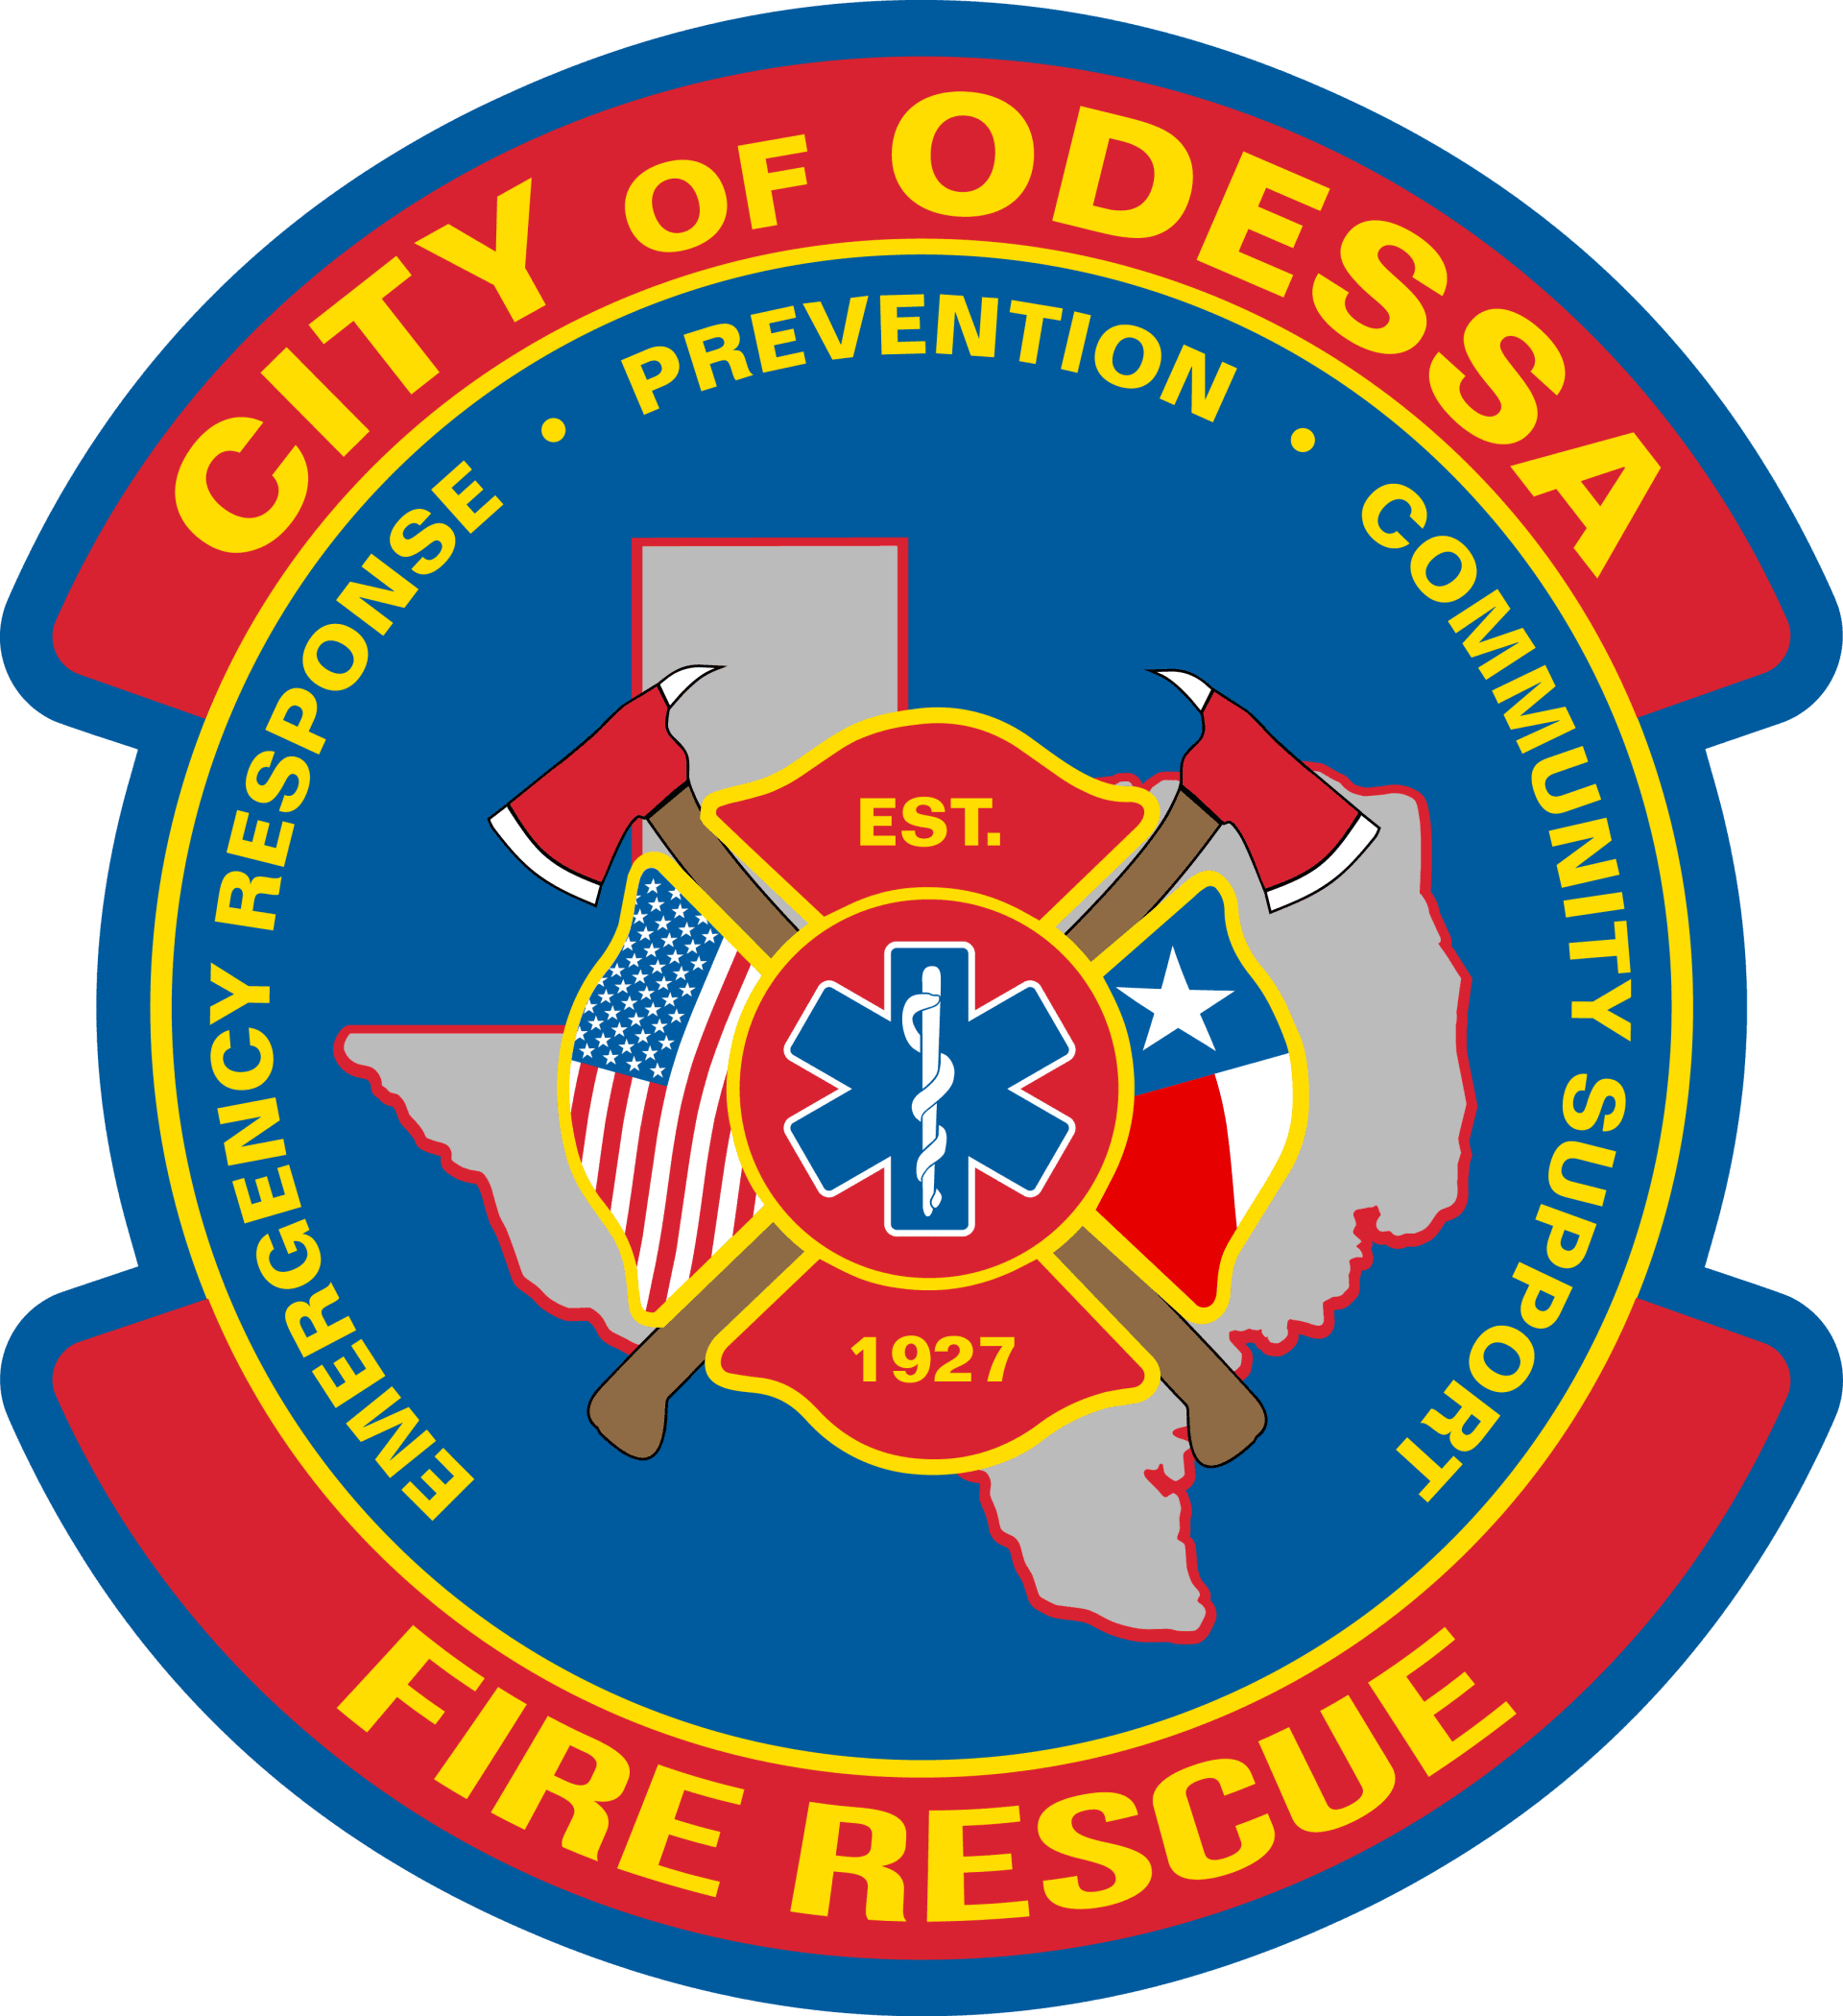 City of Odessa Fire Rescue, Emergency Response, Prevention, Community Support